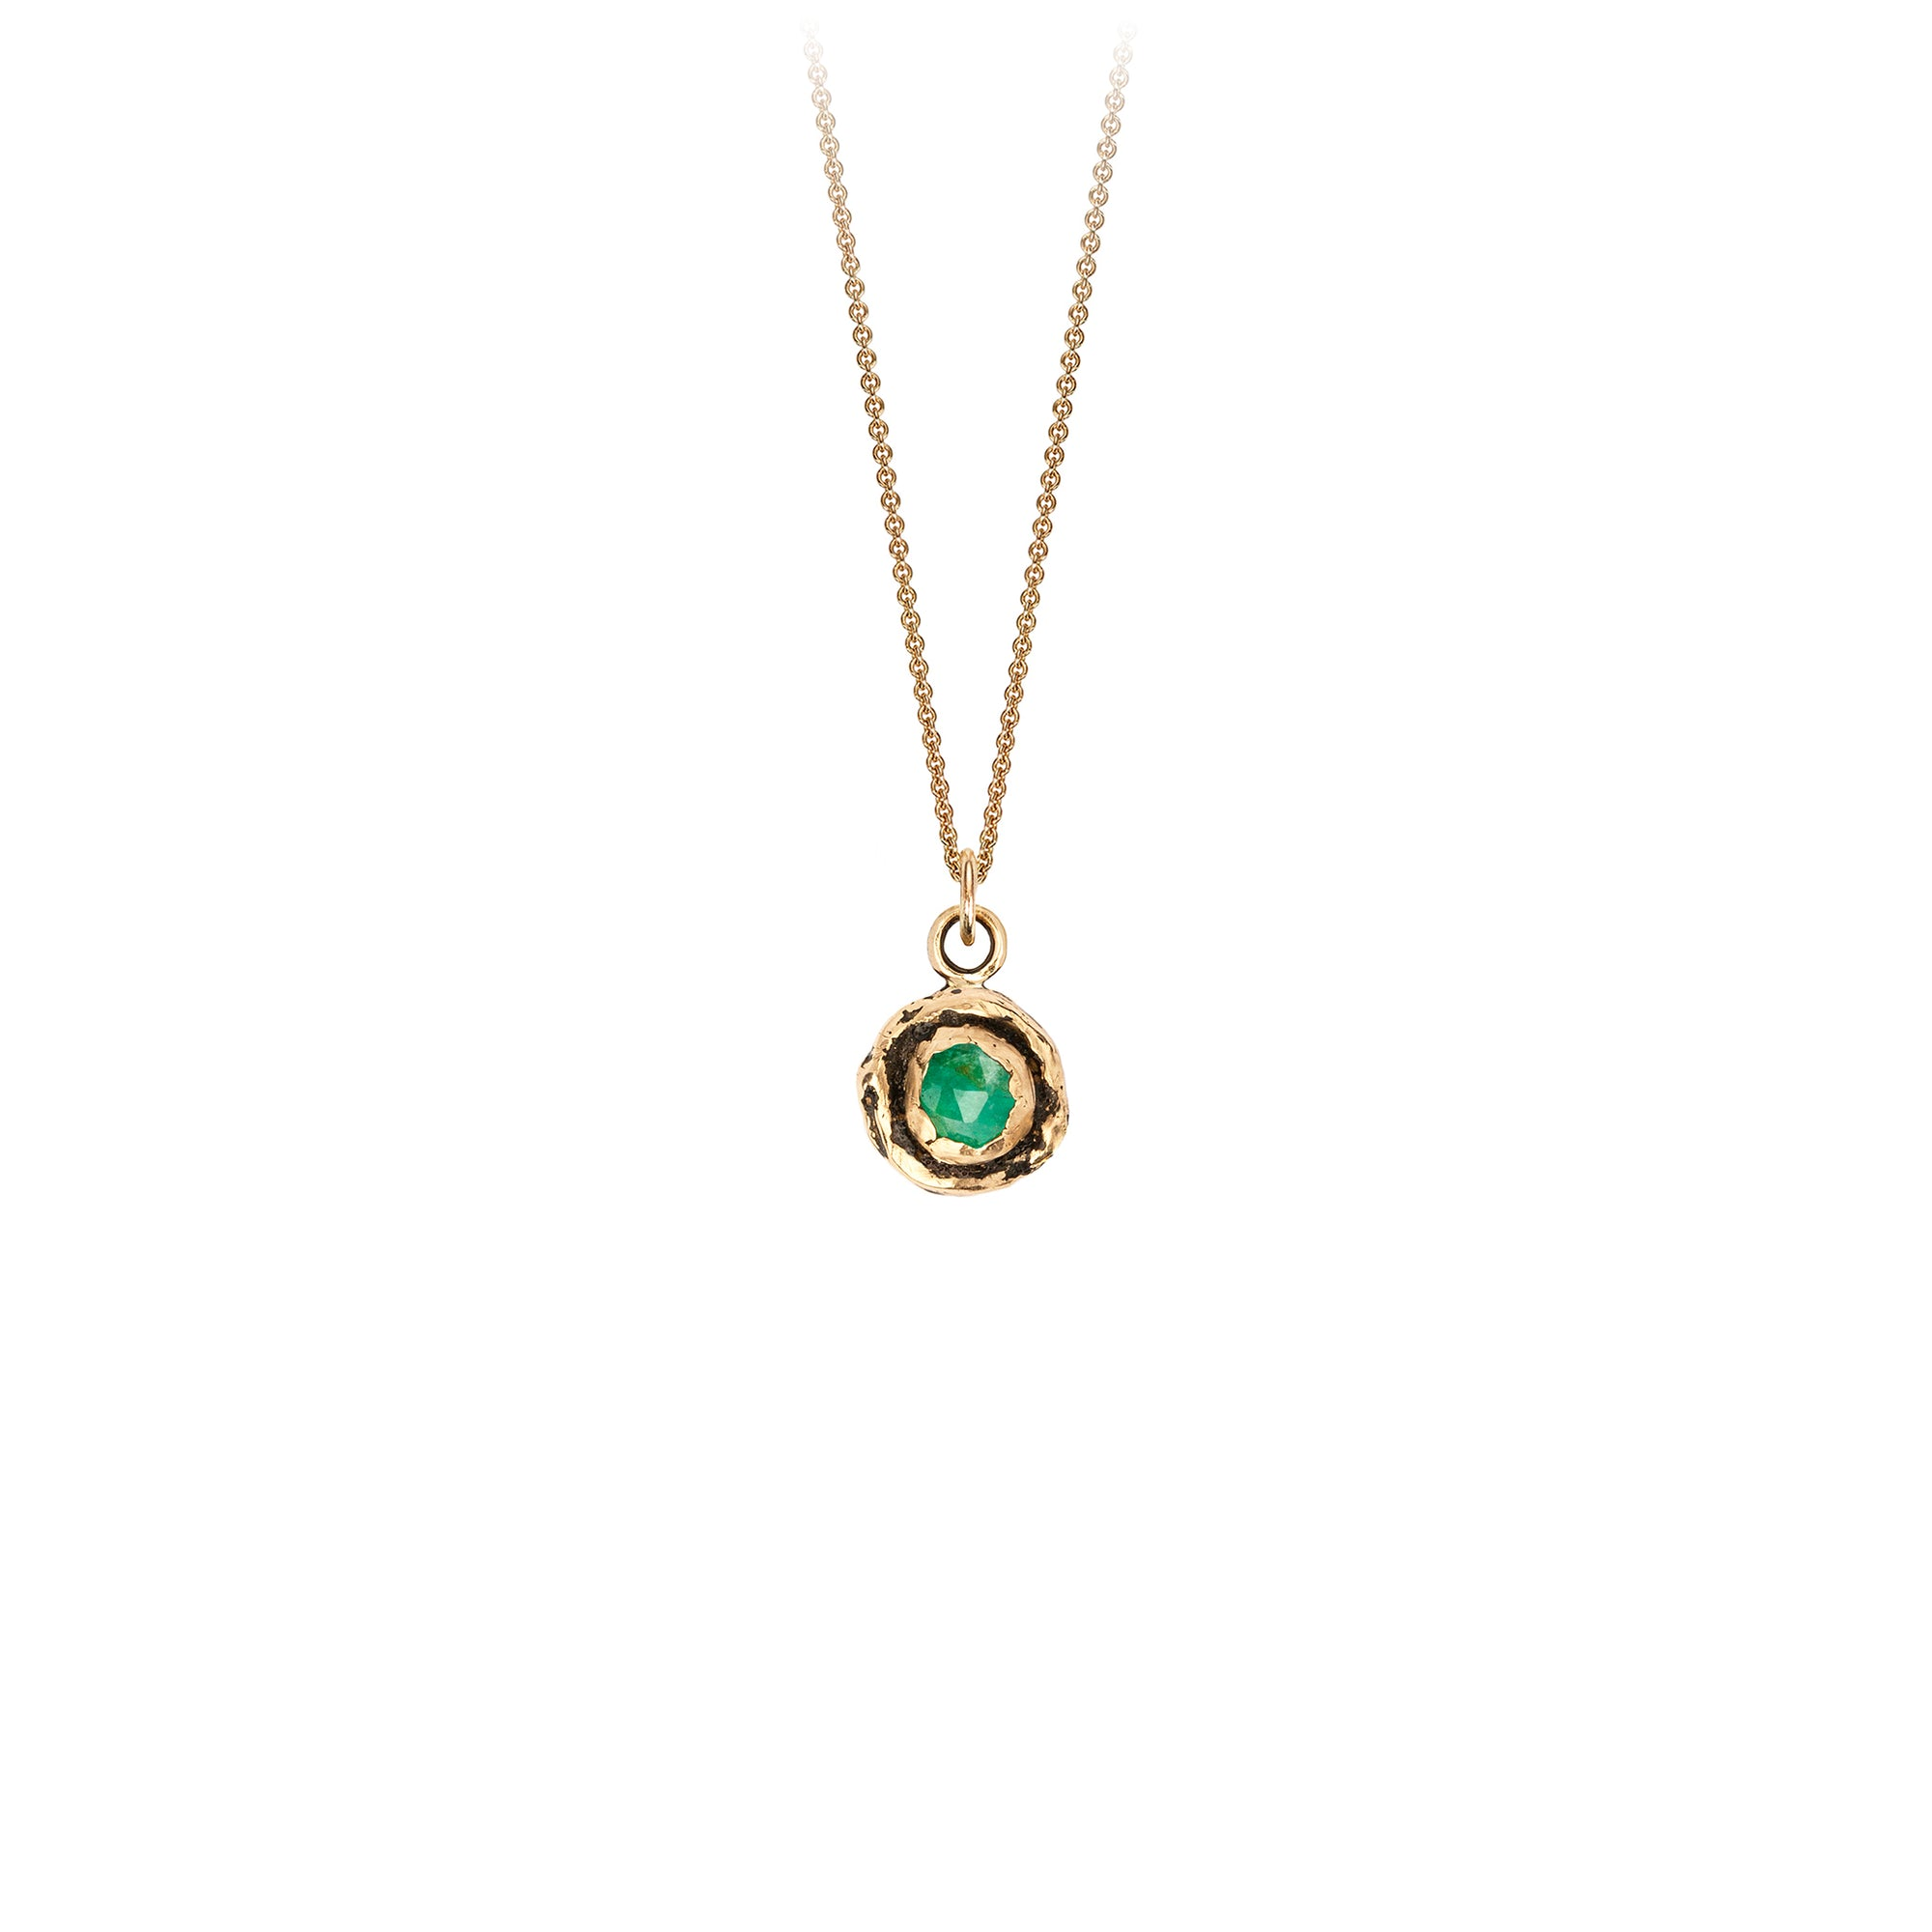 Pyrrha Small Emerald 14K Gold Faceted Stone Necklace